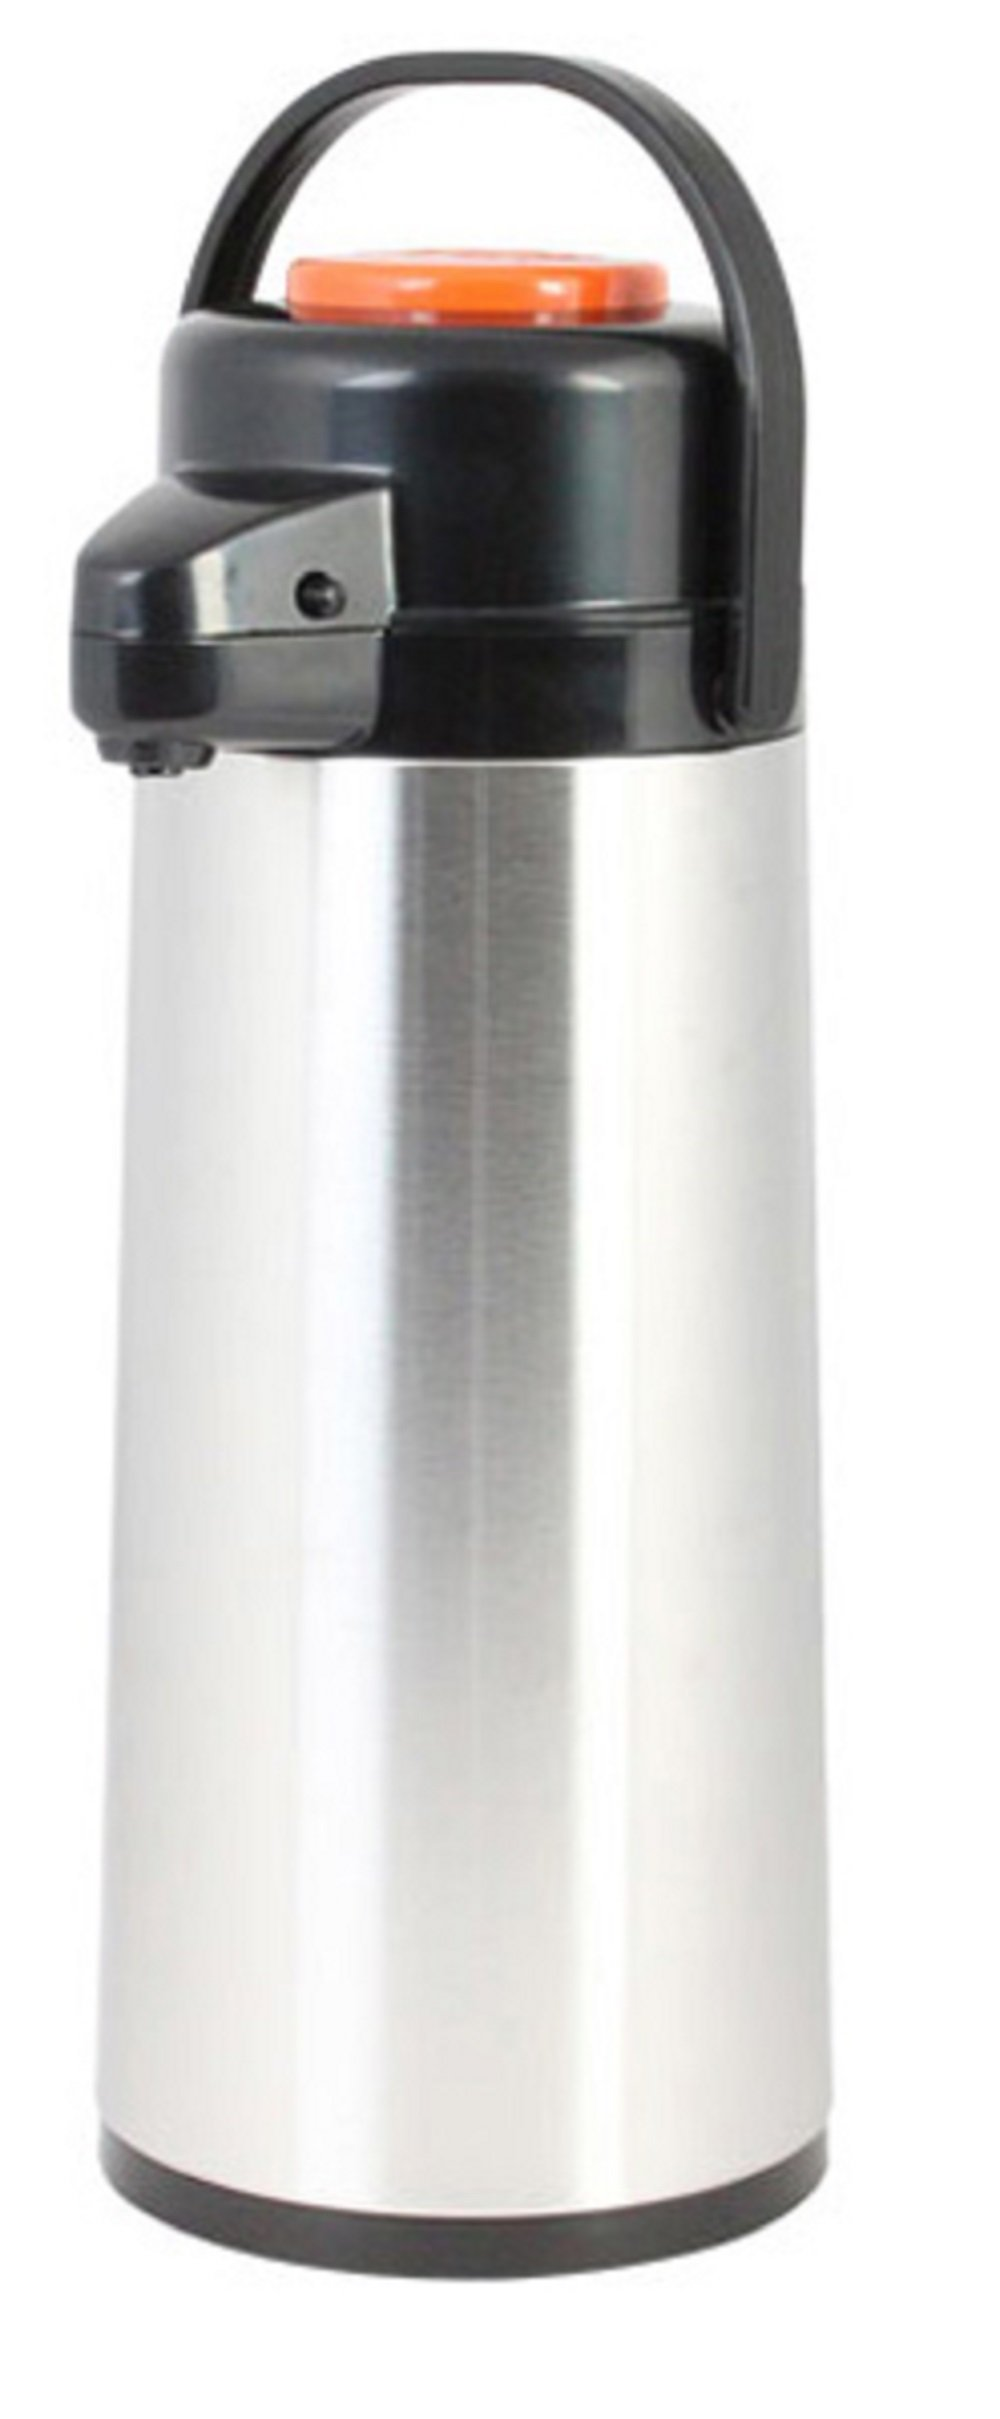 Thunder Group ASPG030D, 3 Liters/101 Ounces Ounces Glass Lined Airpot, Hot Coffee Dispenser, Stainless Steel Decaf Push Button Vacuum Server by Thunder Group (Image #1)